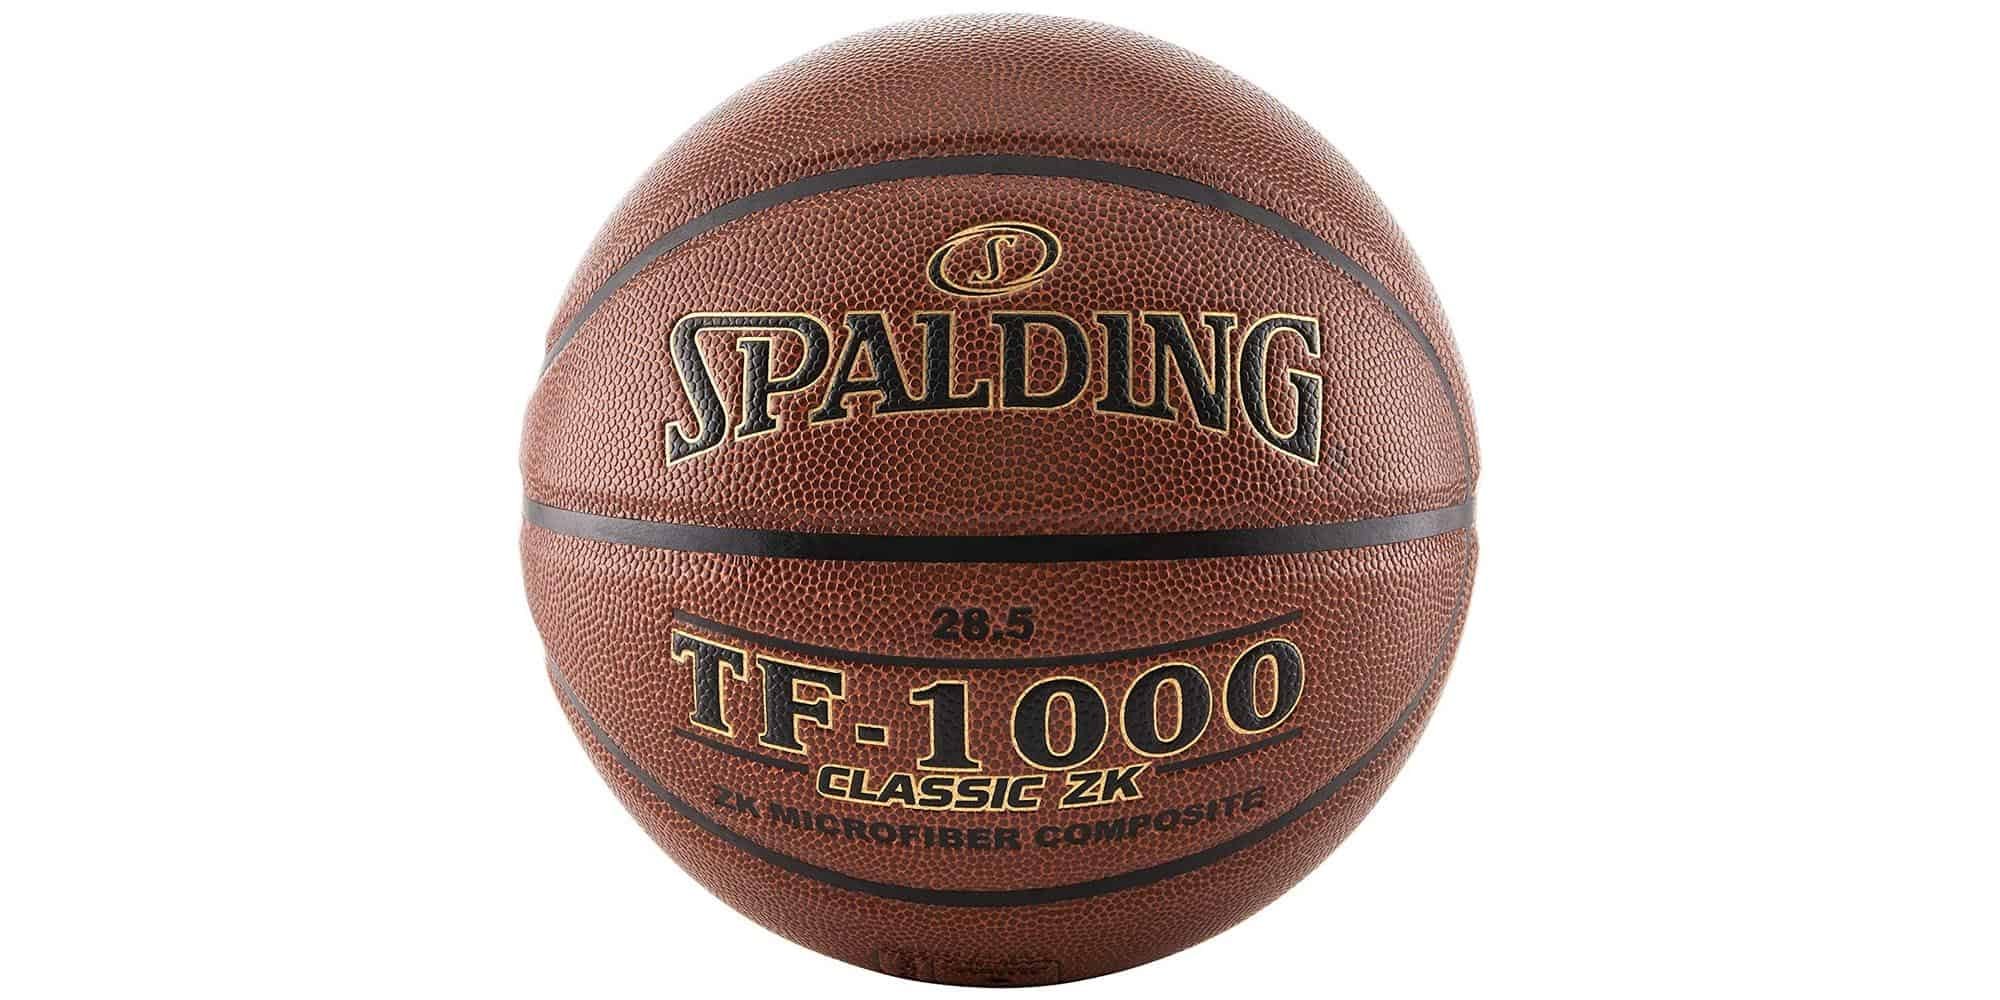 featured image for spalding tf-1000 classic review